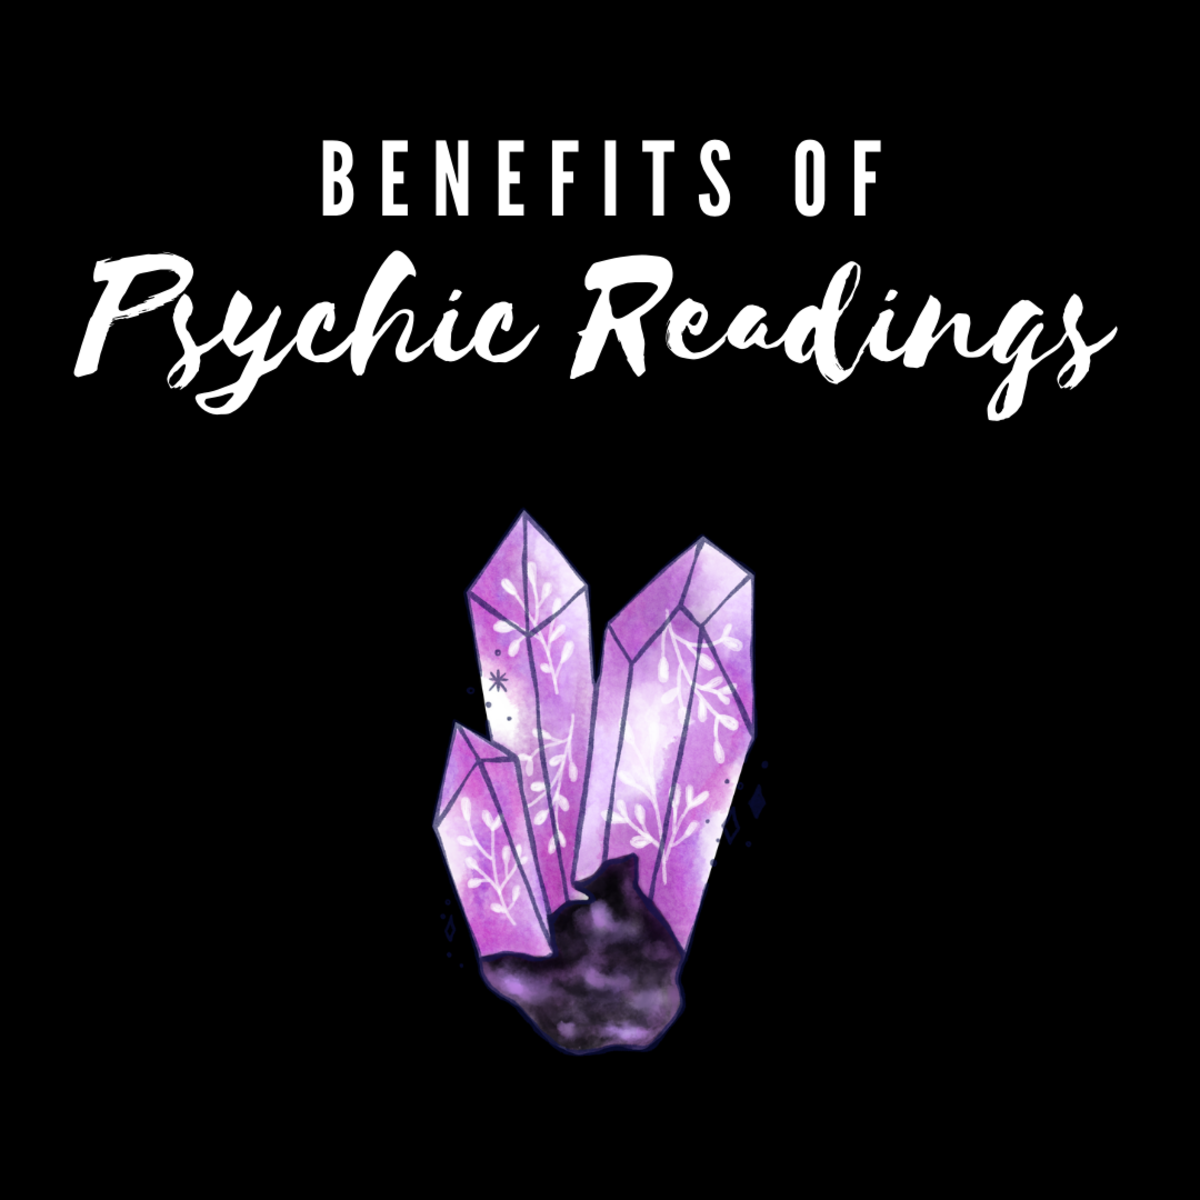 7 Benefits of Getting a Psychic Reading